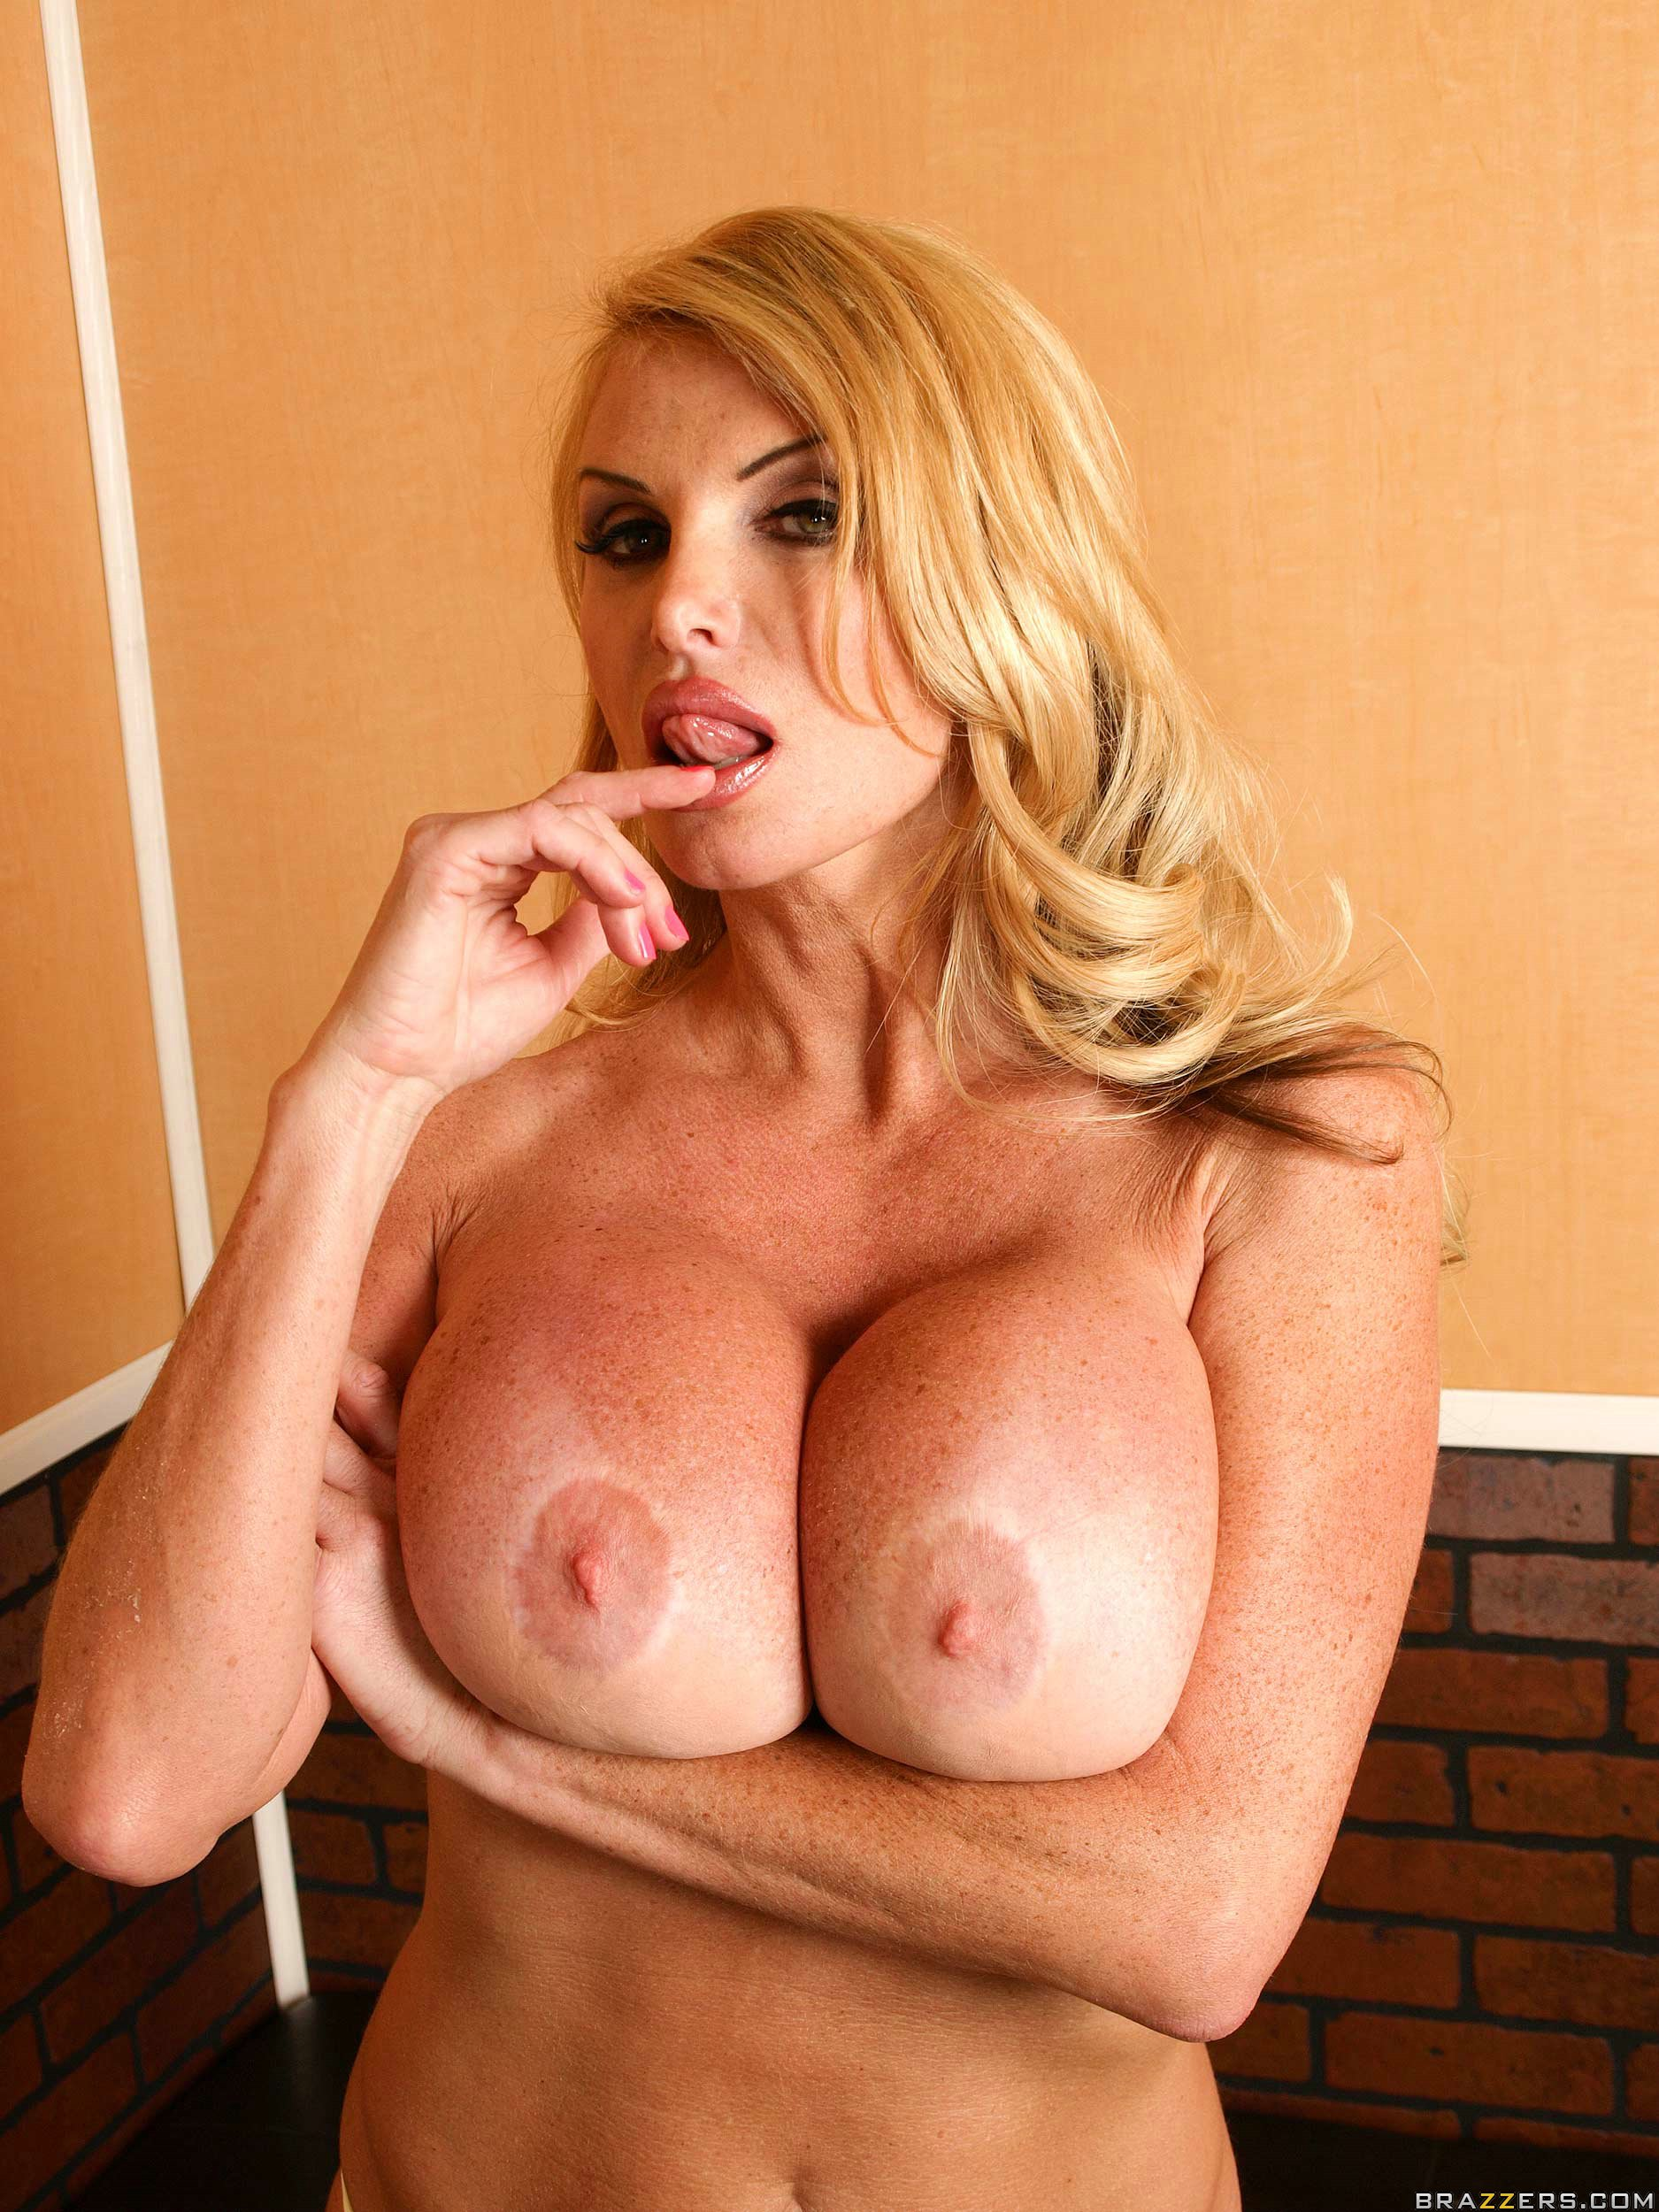 gorgeous face huge breast and amazing experience by